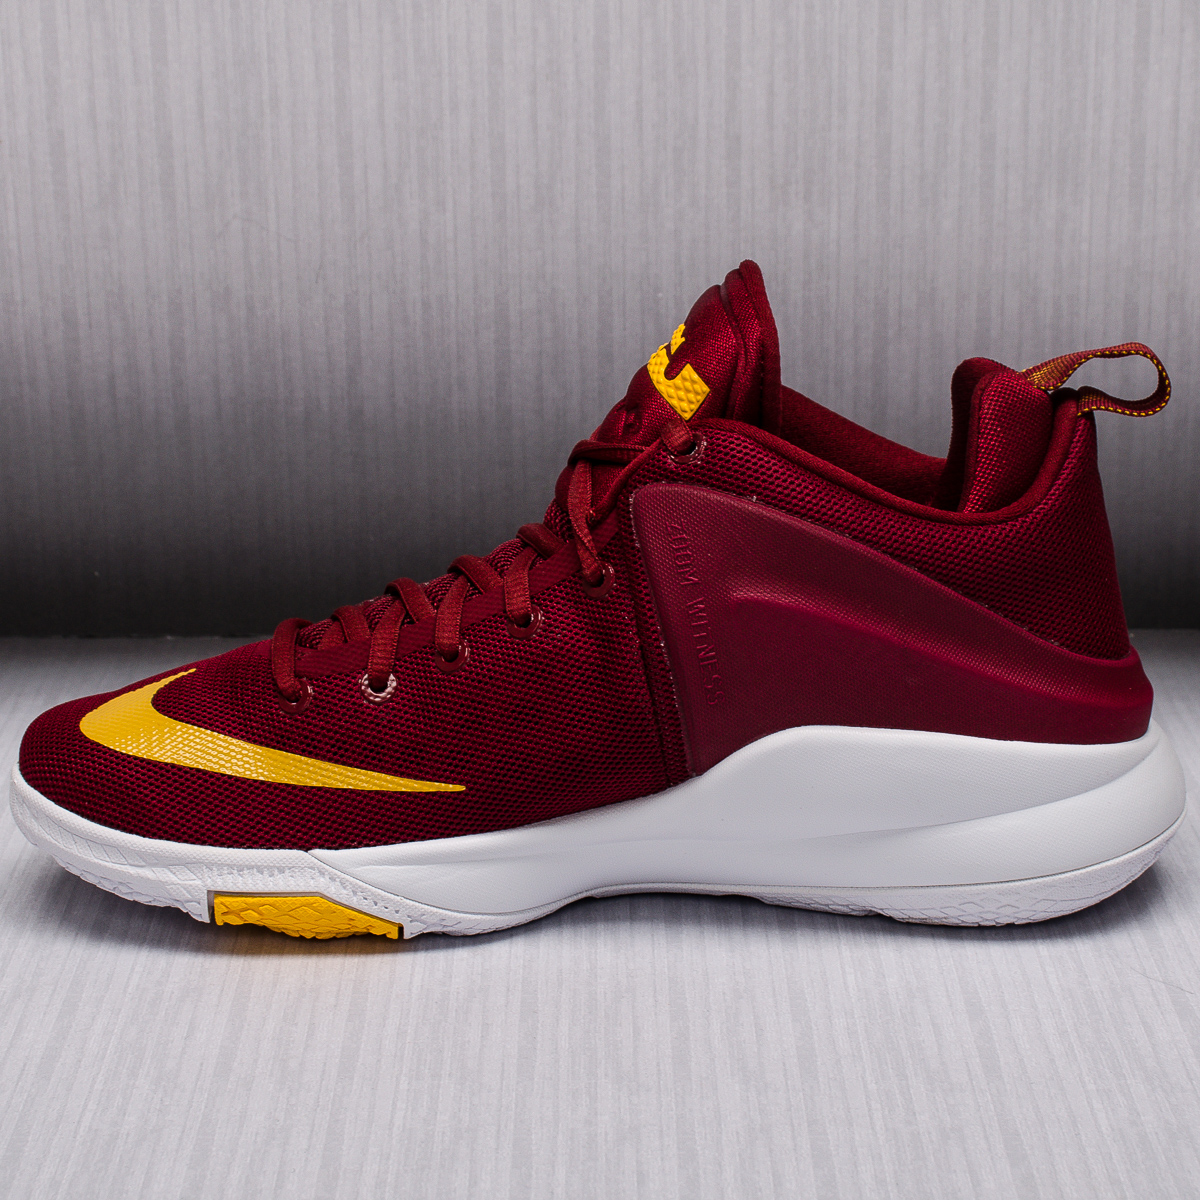 Nike Zoom Witness Cavaliers Basketball Shoes - BASKETBALL ...